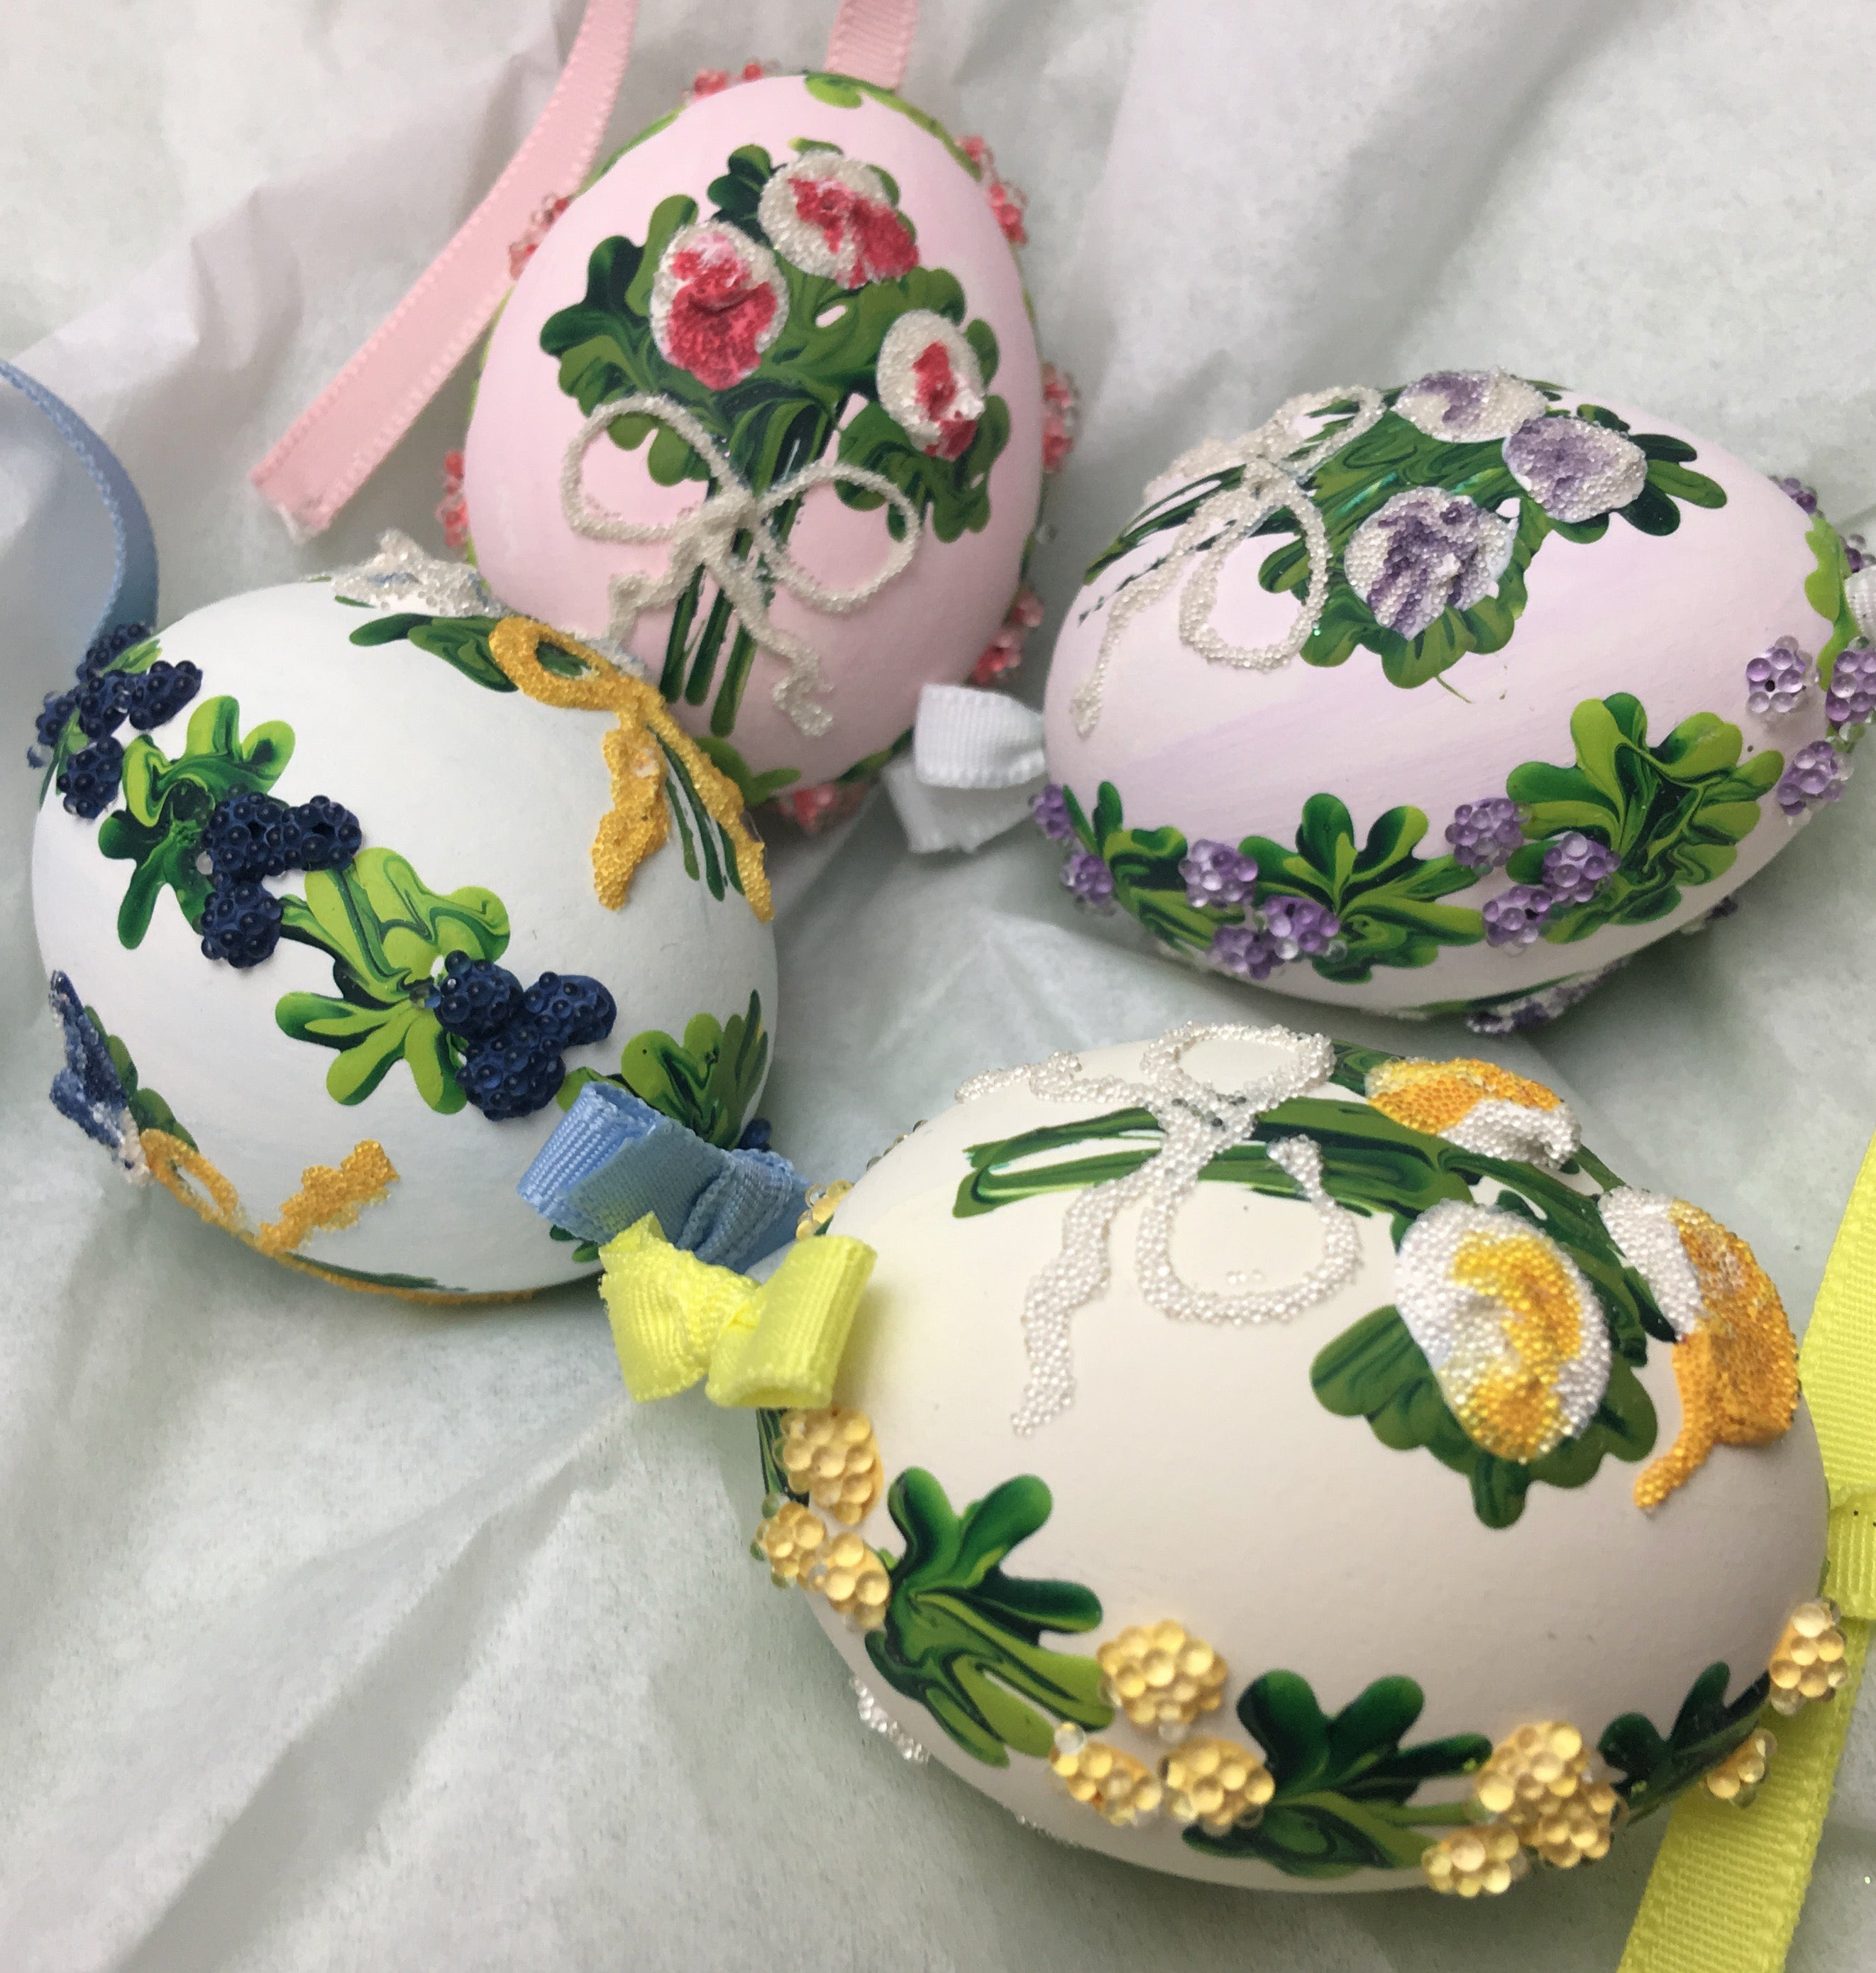 Easter Egg Ornaments with Flowers